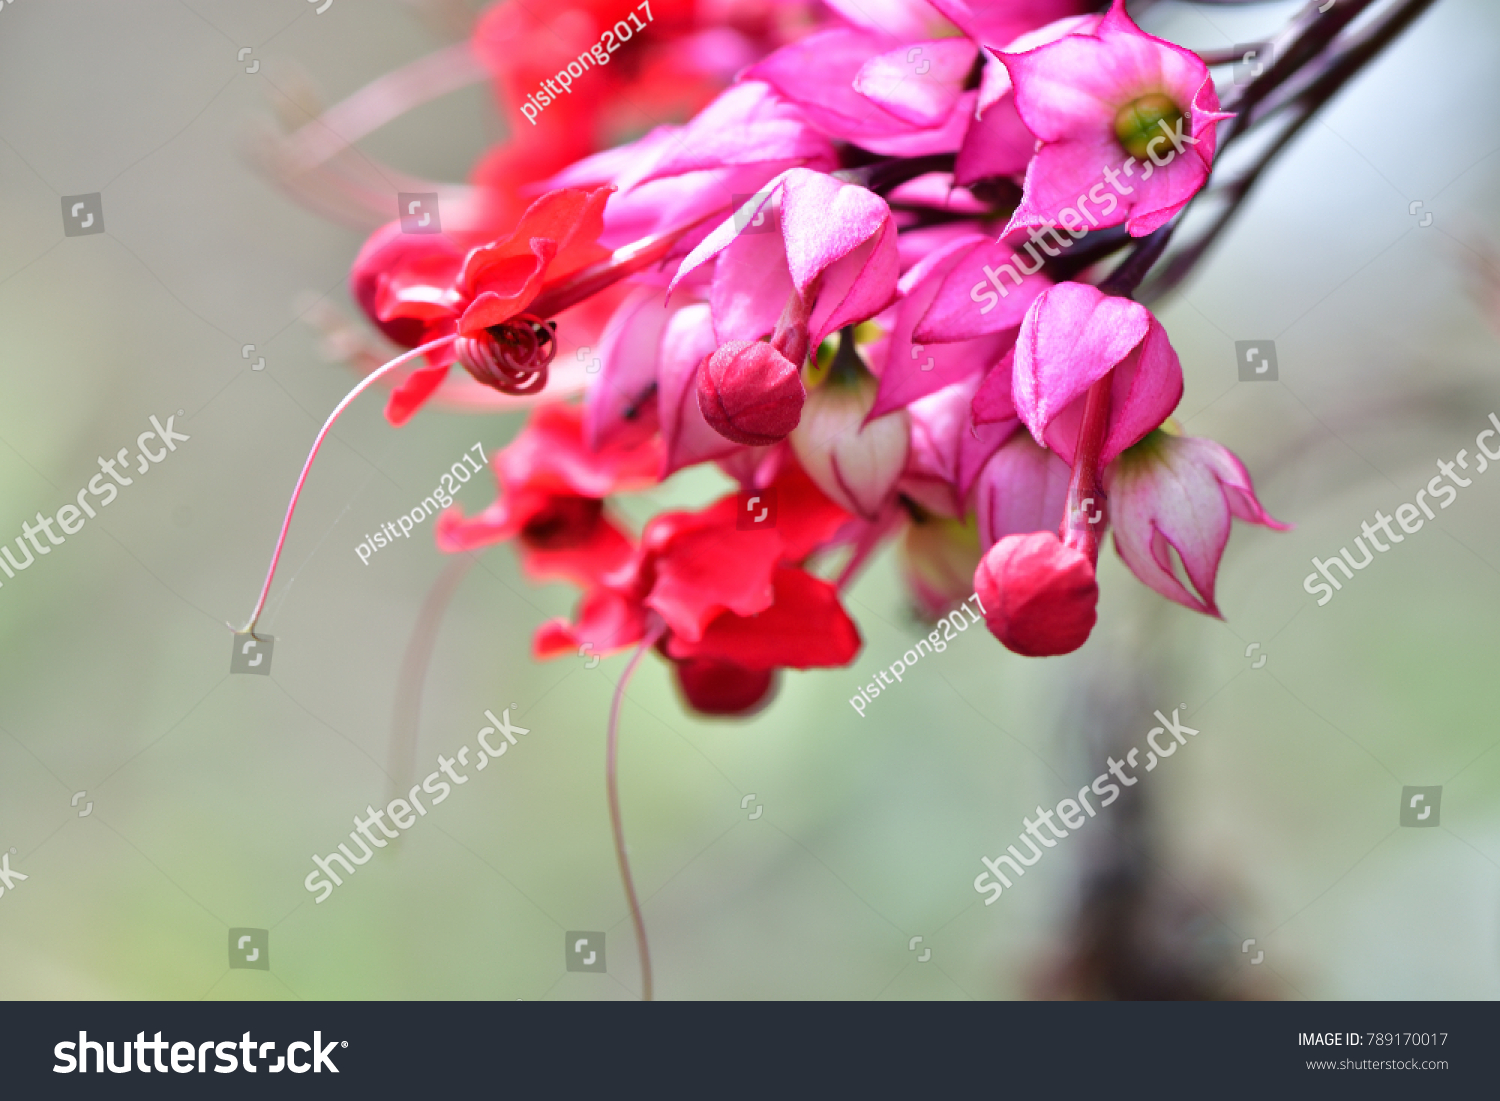 Clerodendrum x speciosum java glory bean stock photo download now clerodendrum x speciosum java glory bean red bleeding heart vine glory bowers izmirmasajfo